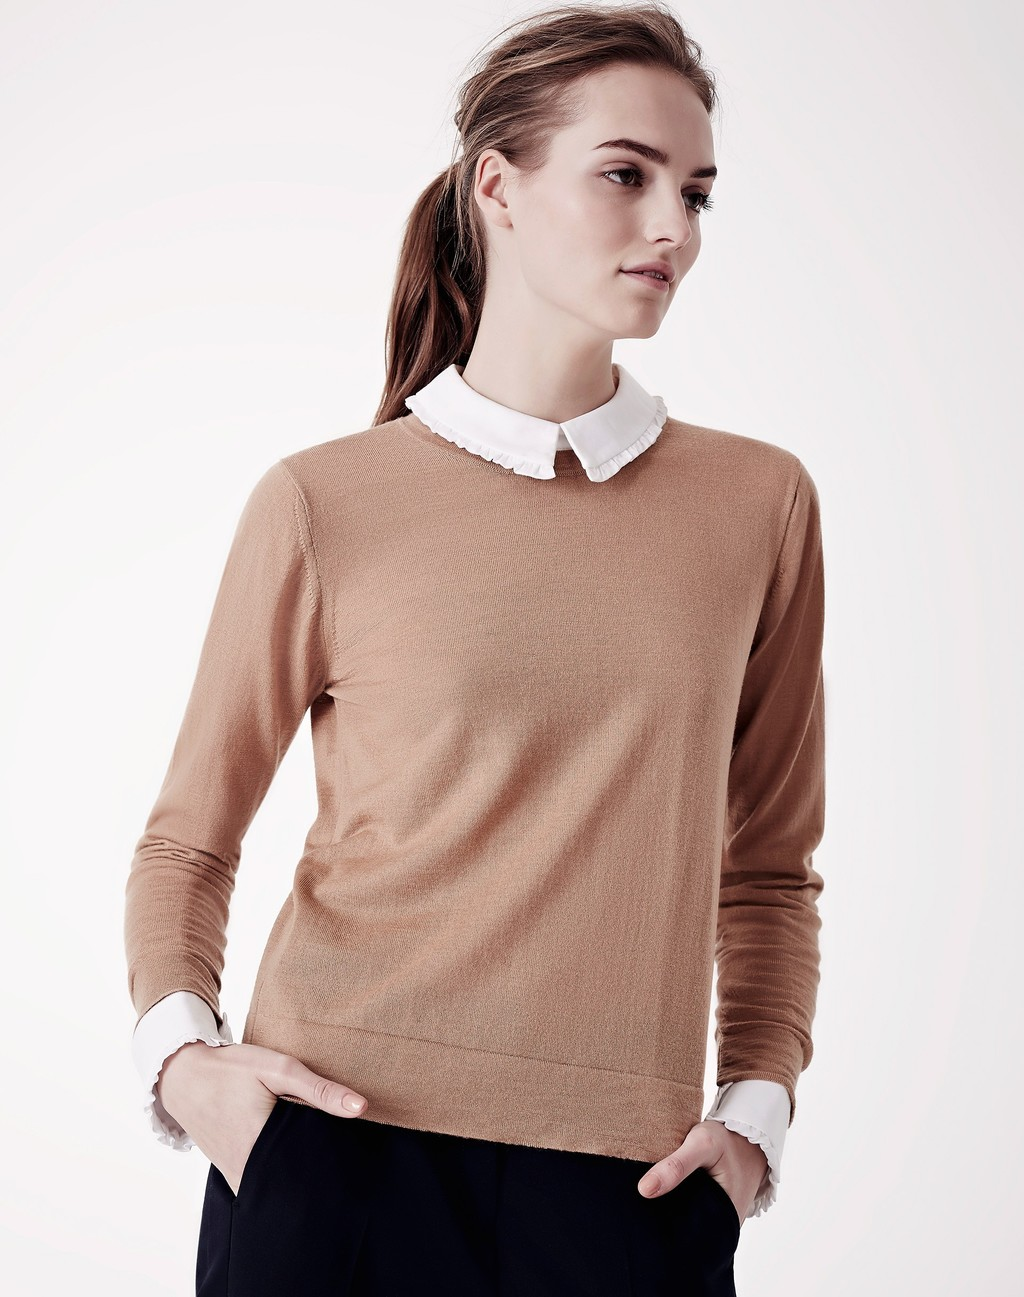 The Perfect Crew Neck Jumper Biscuit - style: standard; secondary colour: ivory/cream; predominant colour: camel; occasions: casual; length: standard; fibres: cotton - mix; fit: standard fit; neckline: no opening/shirt collar/peter pan; sleeve length: long sleeve; sleeve style: standard; texture group: knits/crochet; pattern type: knitted - fine stitch; pattern size: standard; pattern: colourblock; season: a/w 2015; wardrobe: highlight